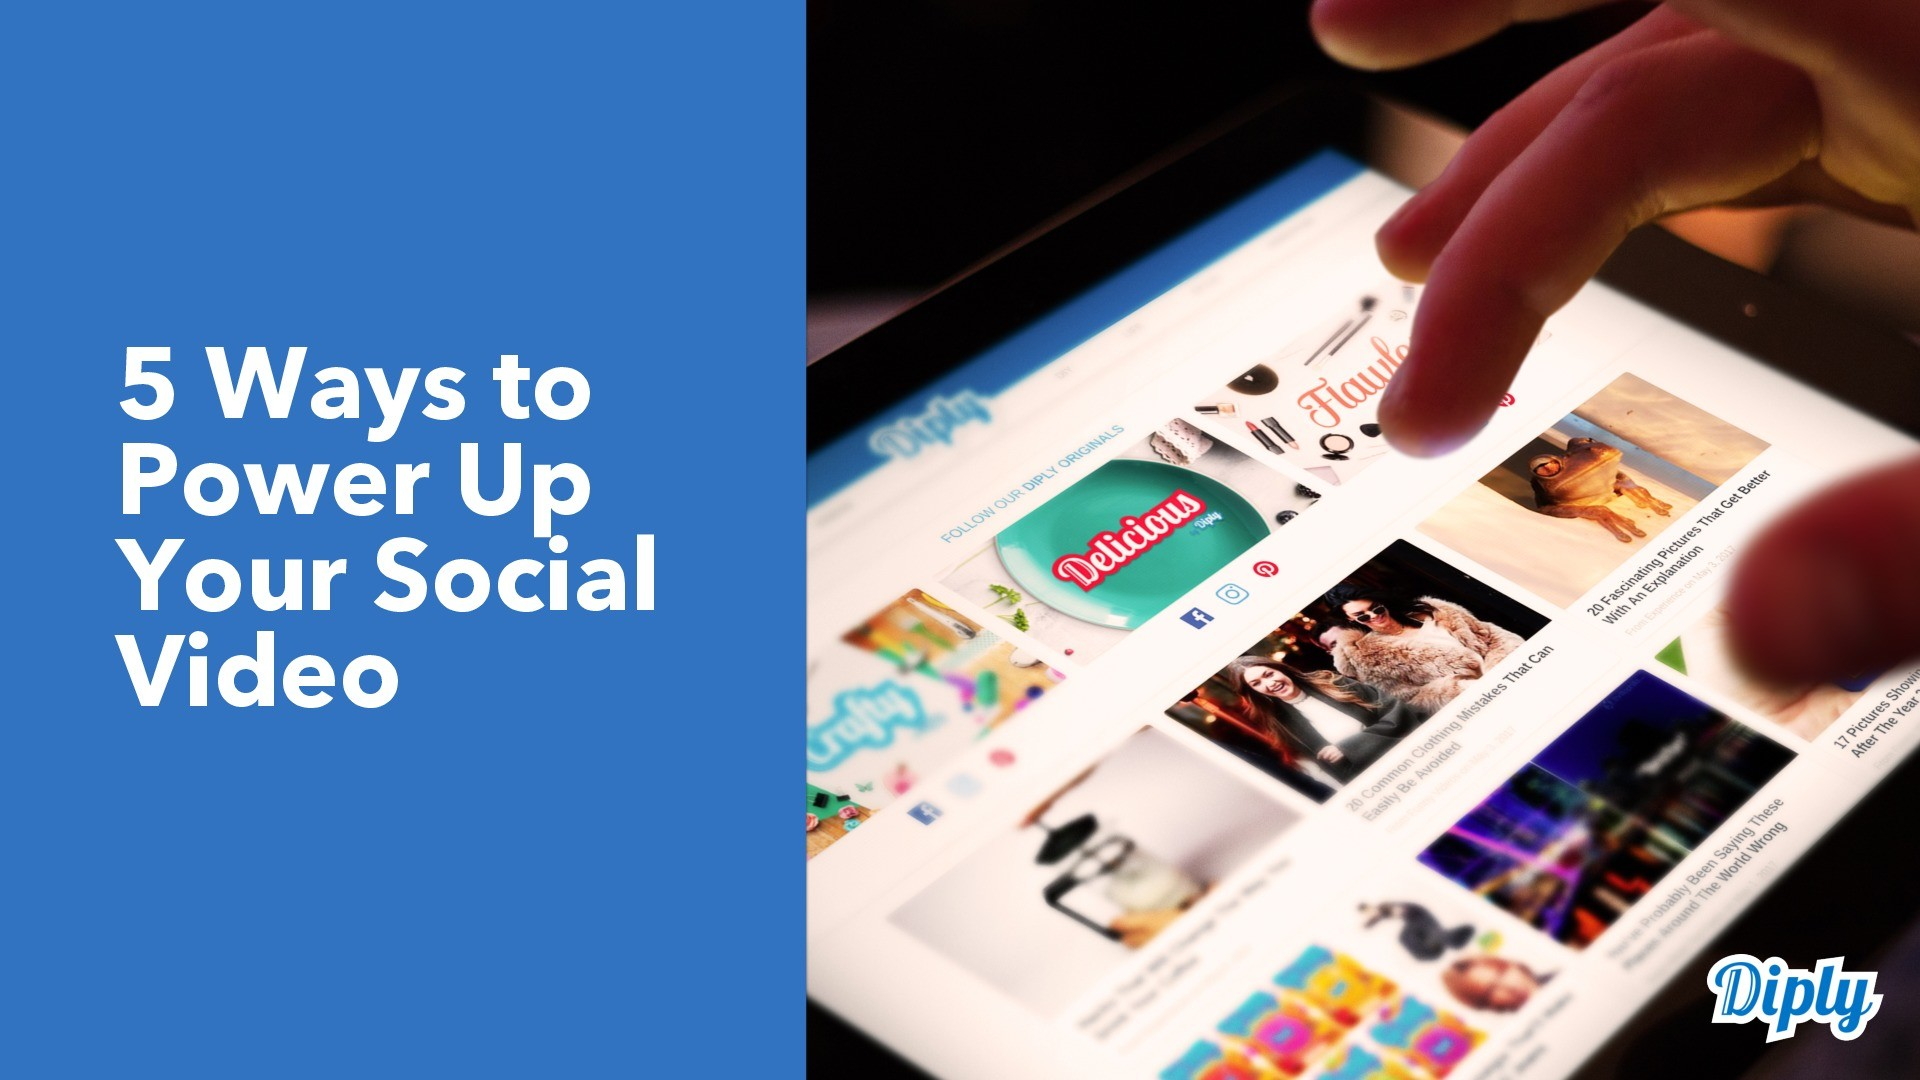 5 Ways to Power Up Your Social Video presentation image